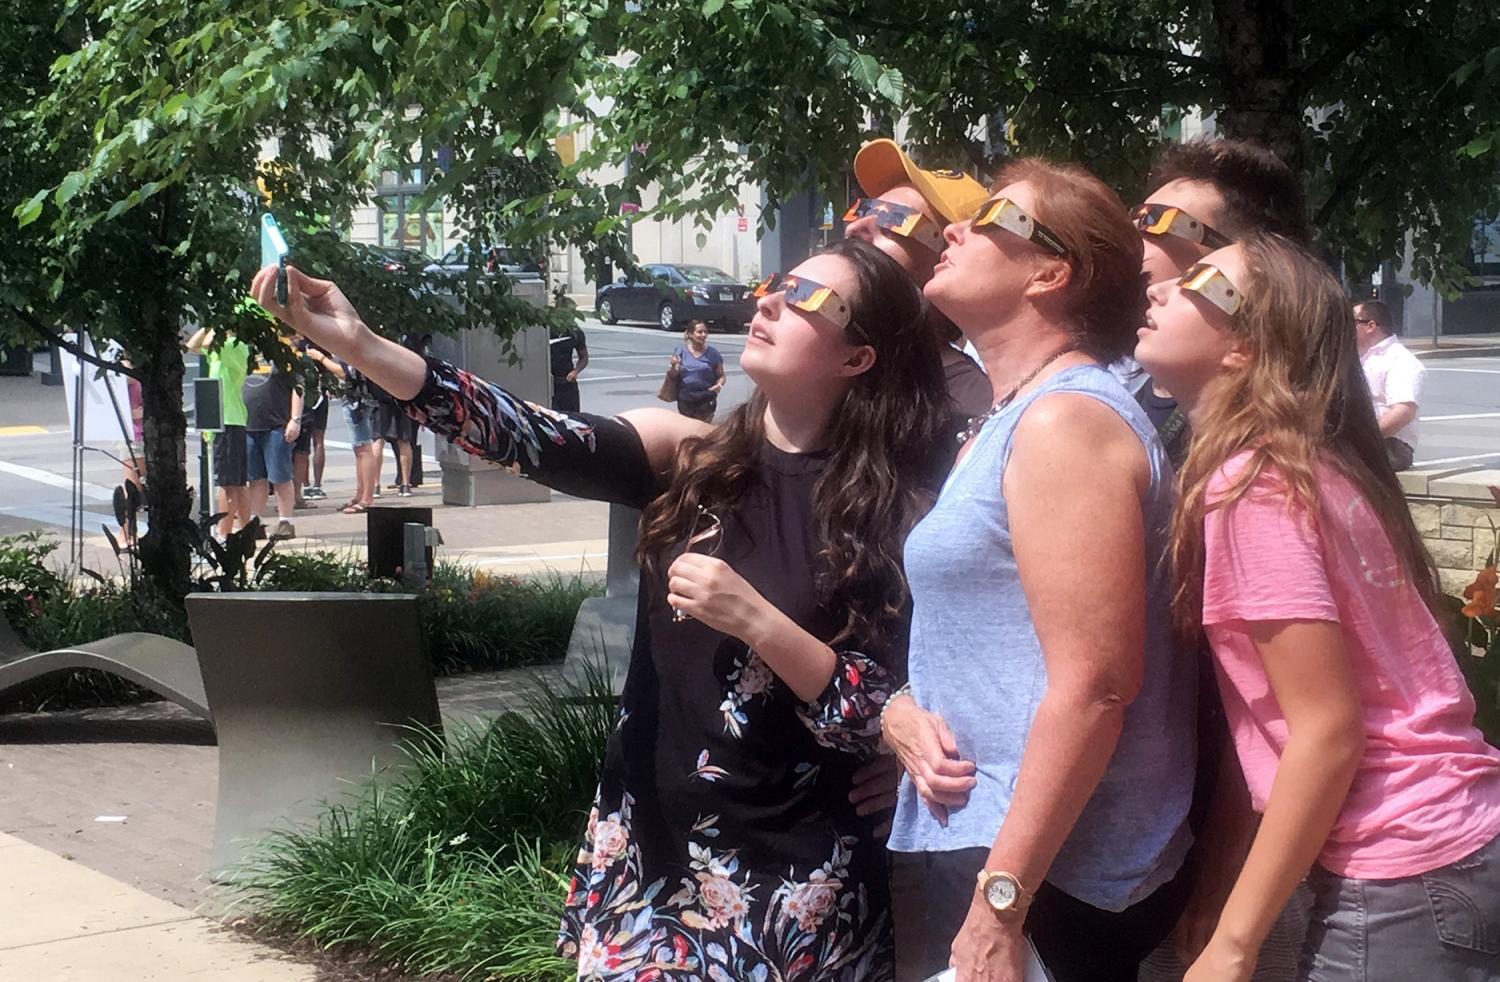 Freshman musical theatre major Frankie Seratch views the partial solar eclipse with his family during honors early move-in day on Aug. 21.